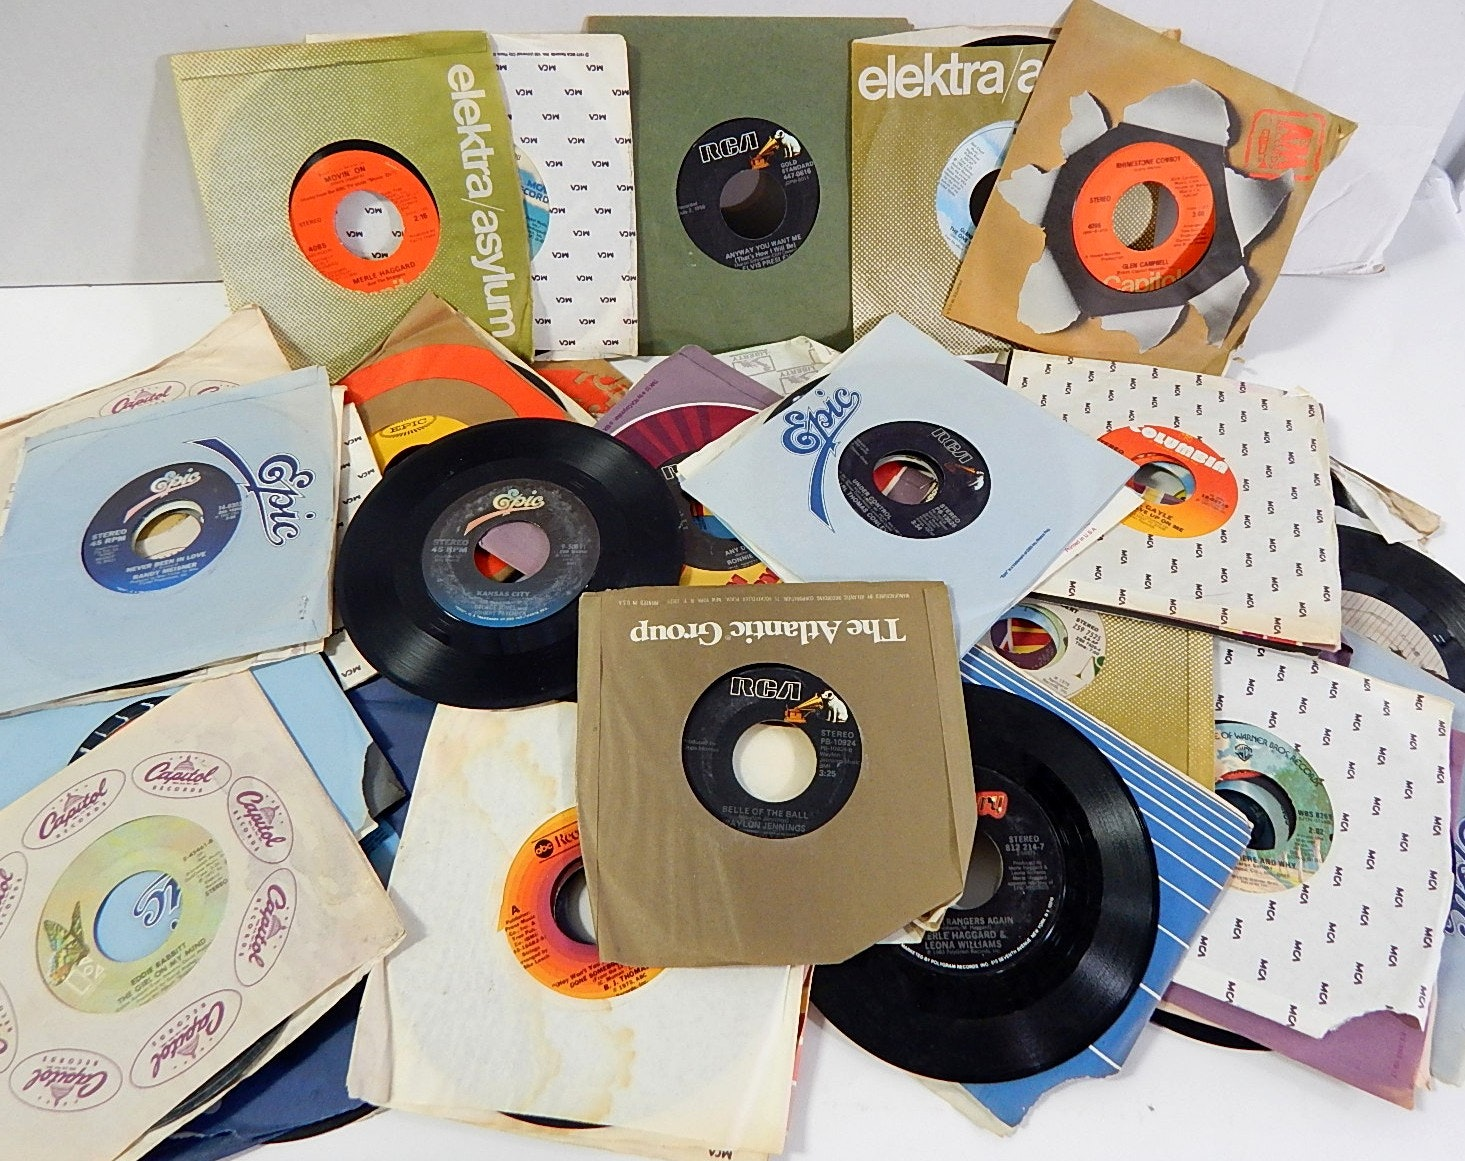 Over 50 Juke Box 45 RPM Records from 1970s and 1980s